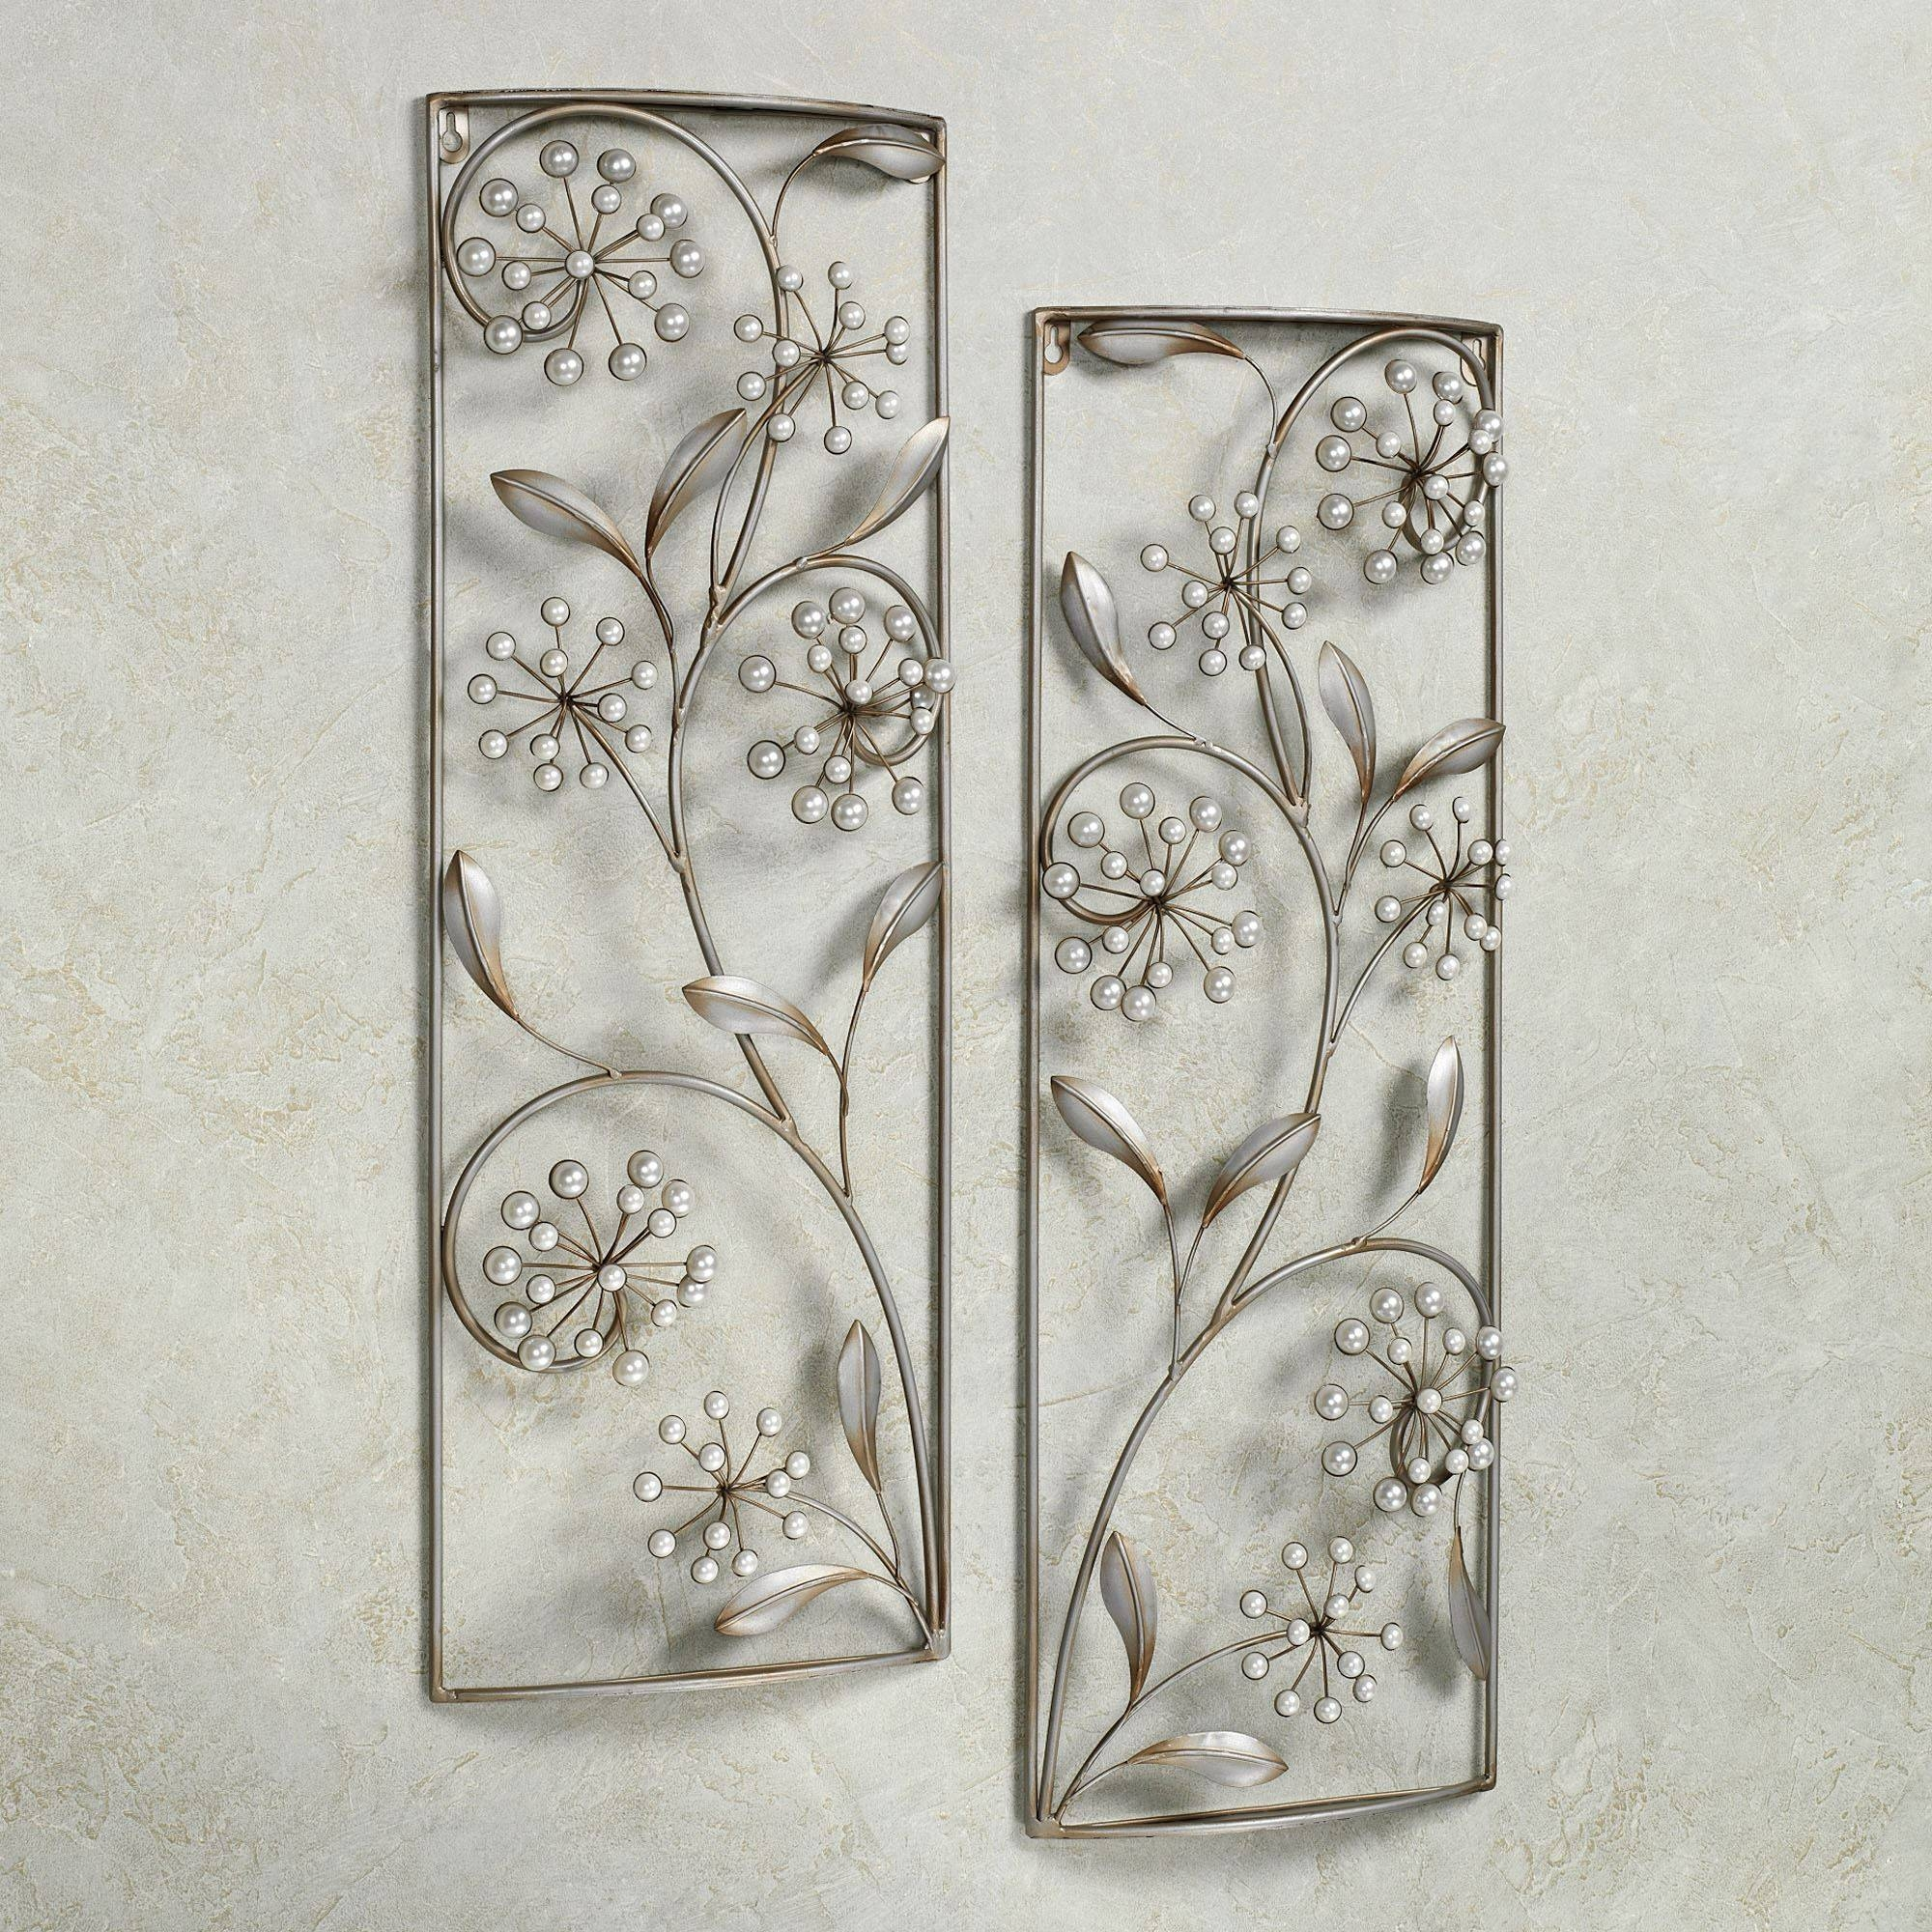 Pearlette Metal Wall Art Panel Set With Regard To Most Current Metal Wall Art Panels (View 16 of 20)